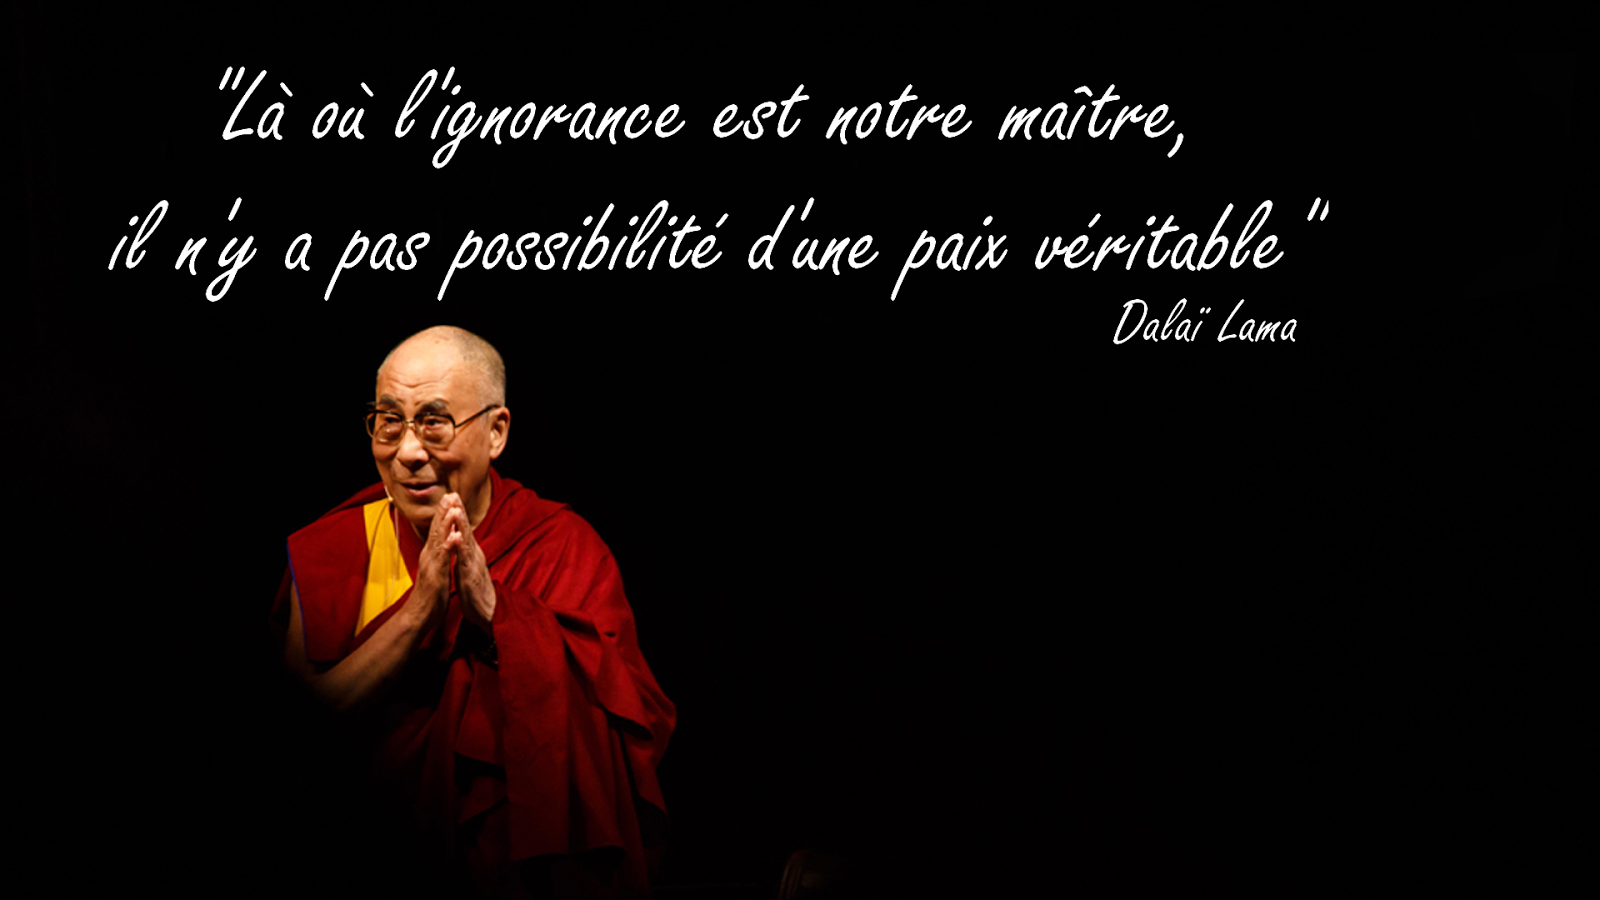 citation du dalai lama